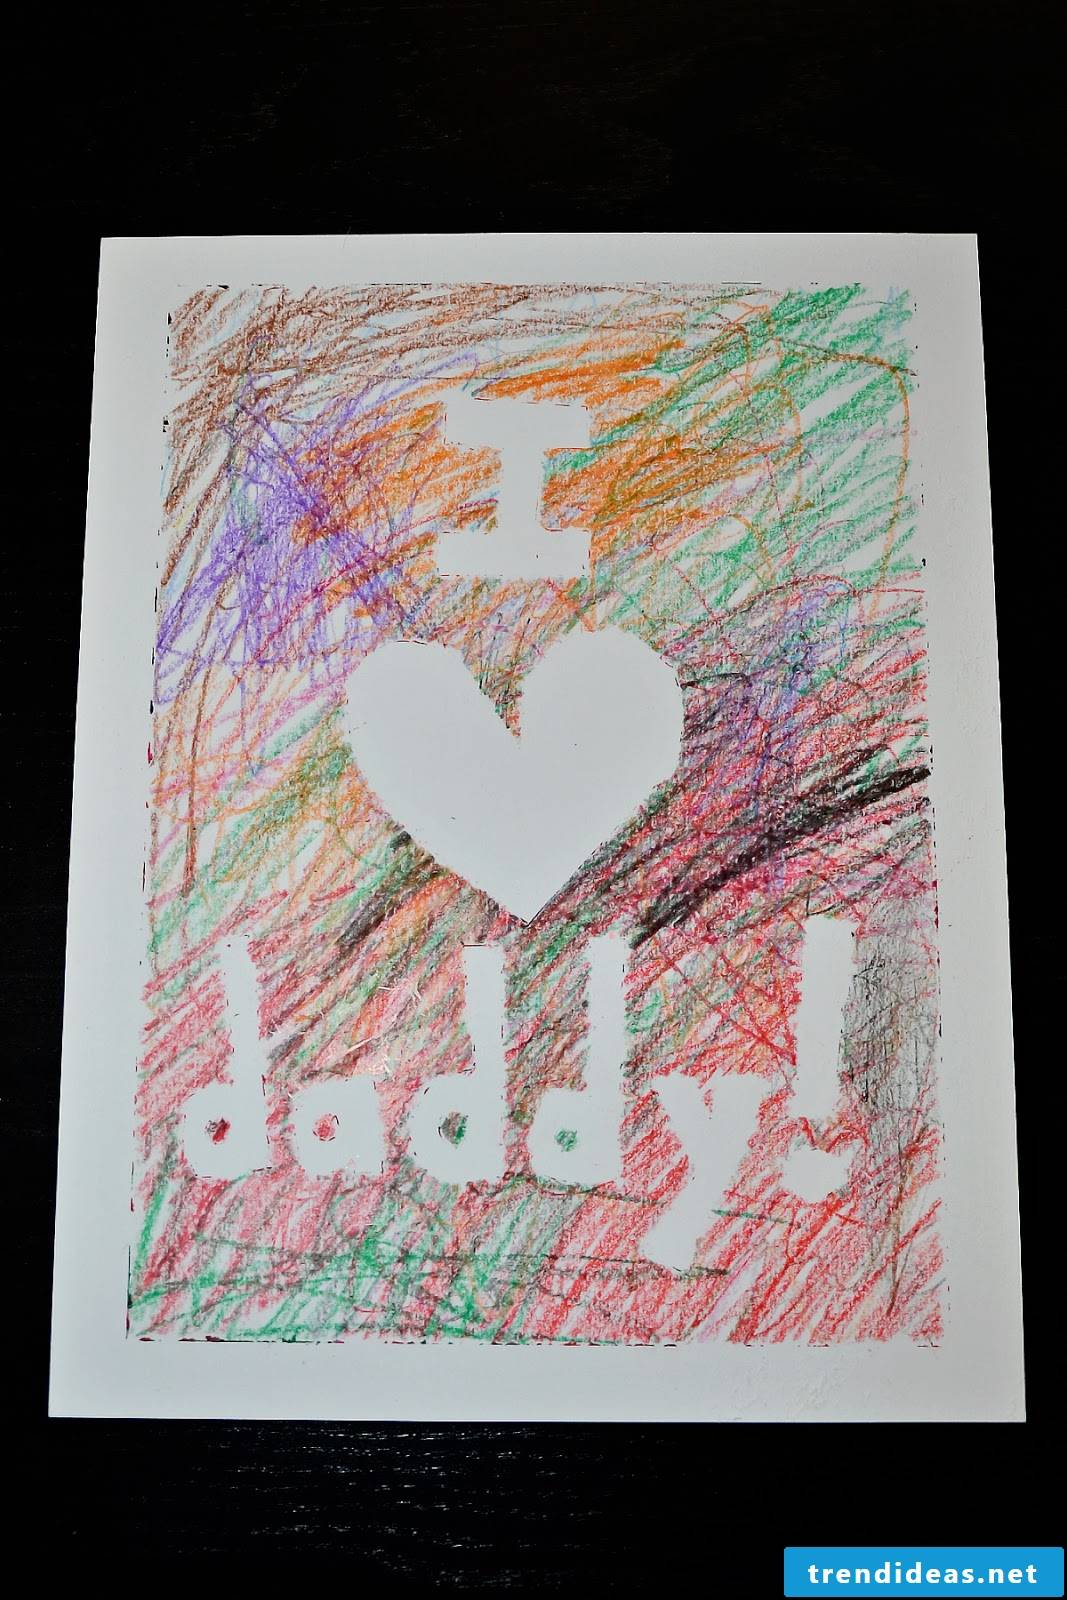 My dad is my hero - wish your father a Happy Father's Day